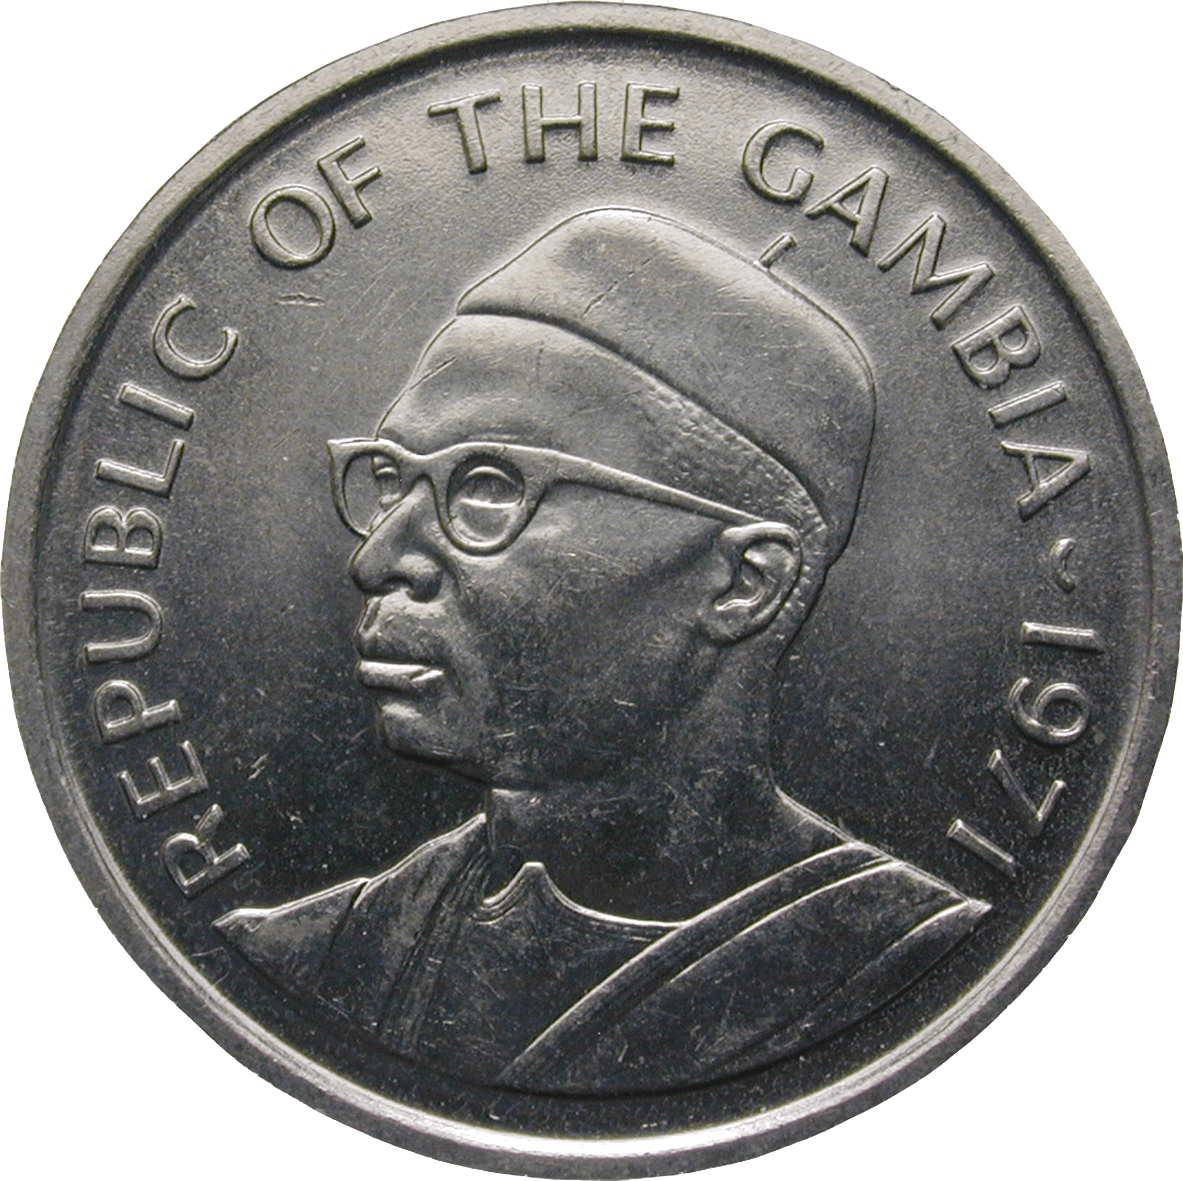 Republic of Gambia, 50 Bututs 1971 (obverse)